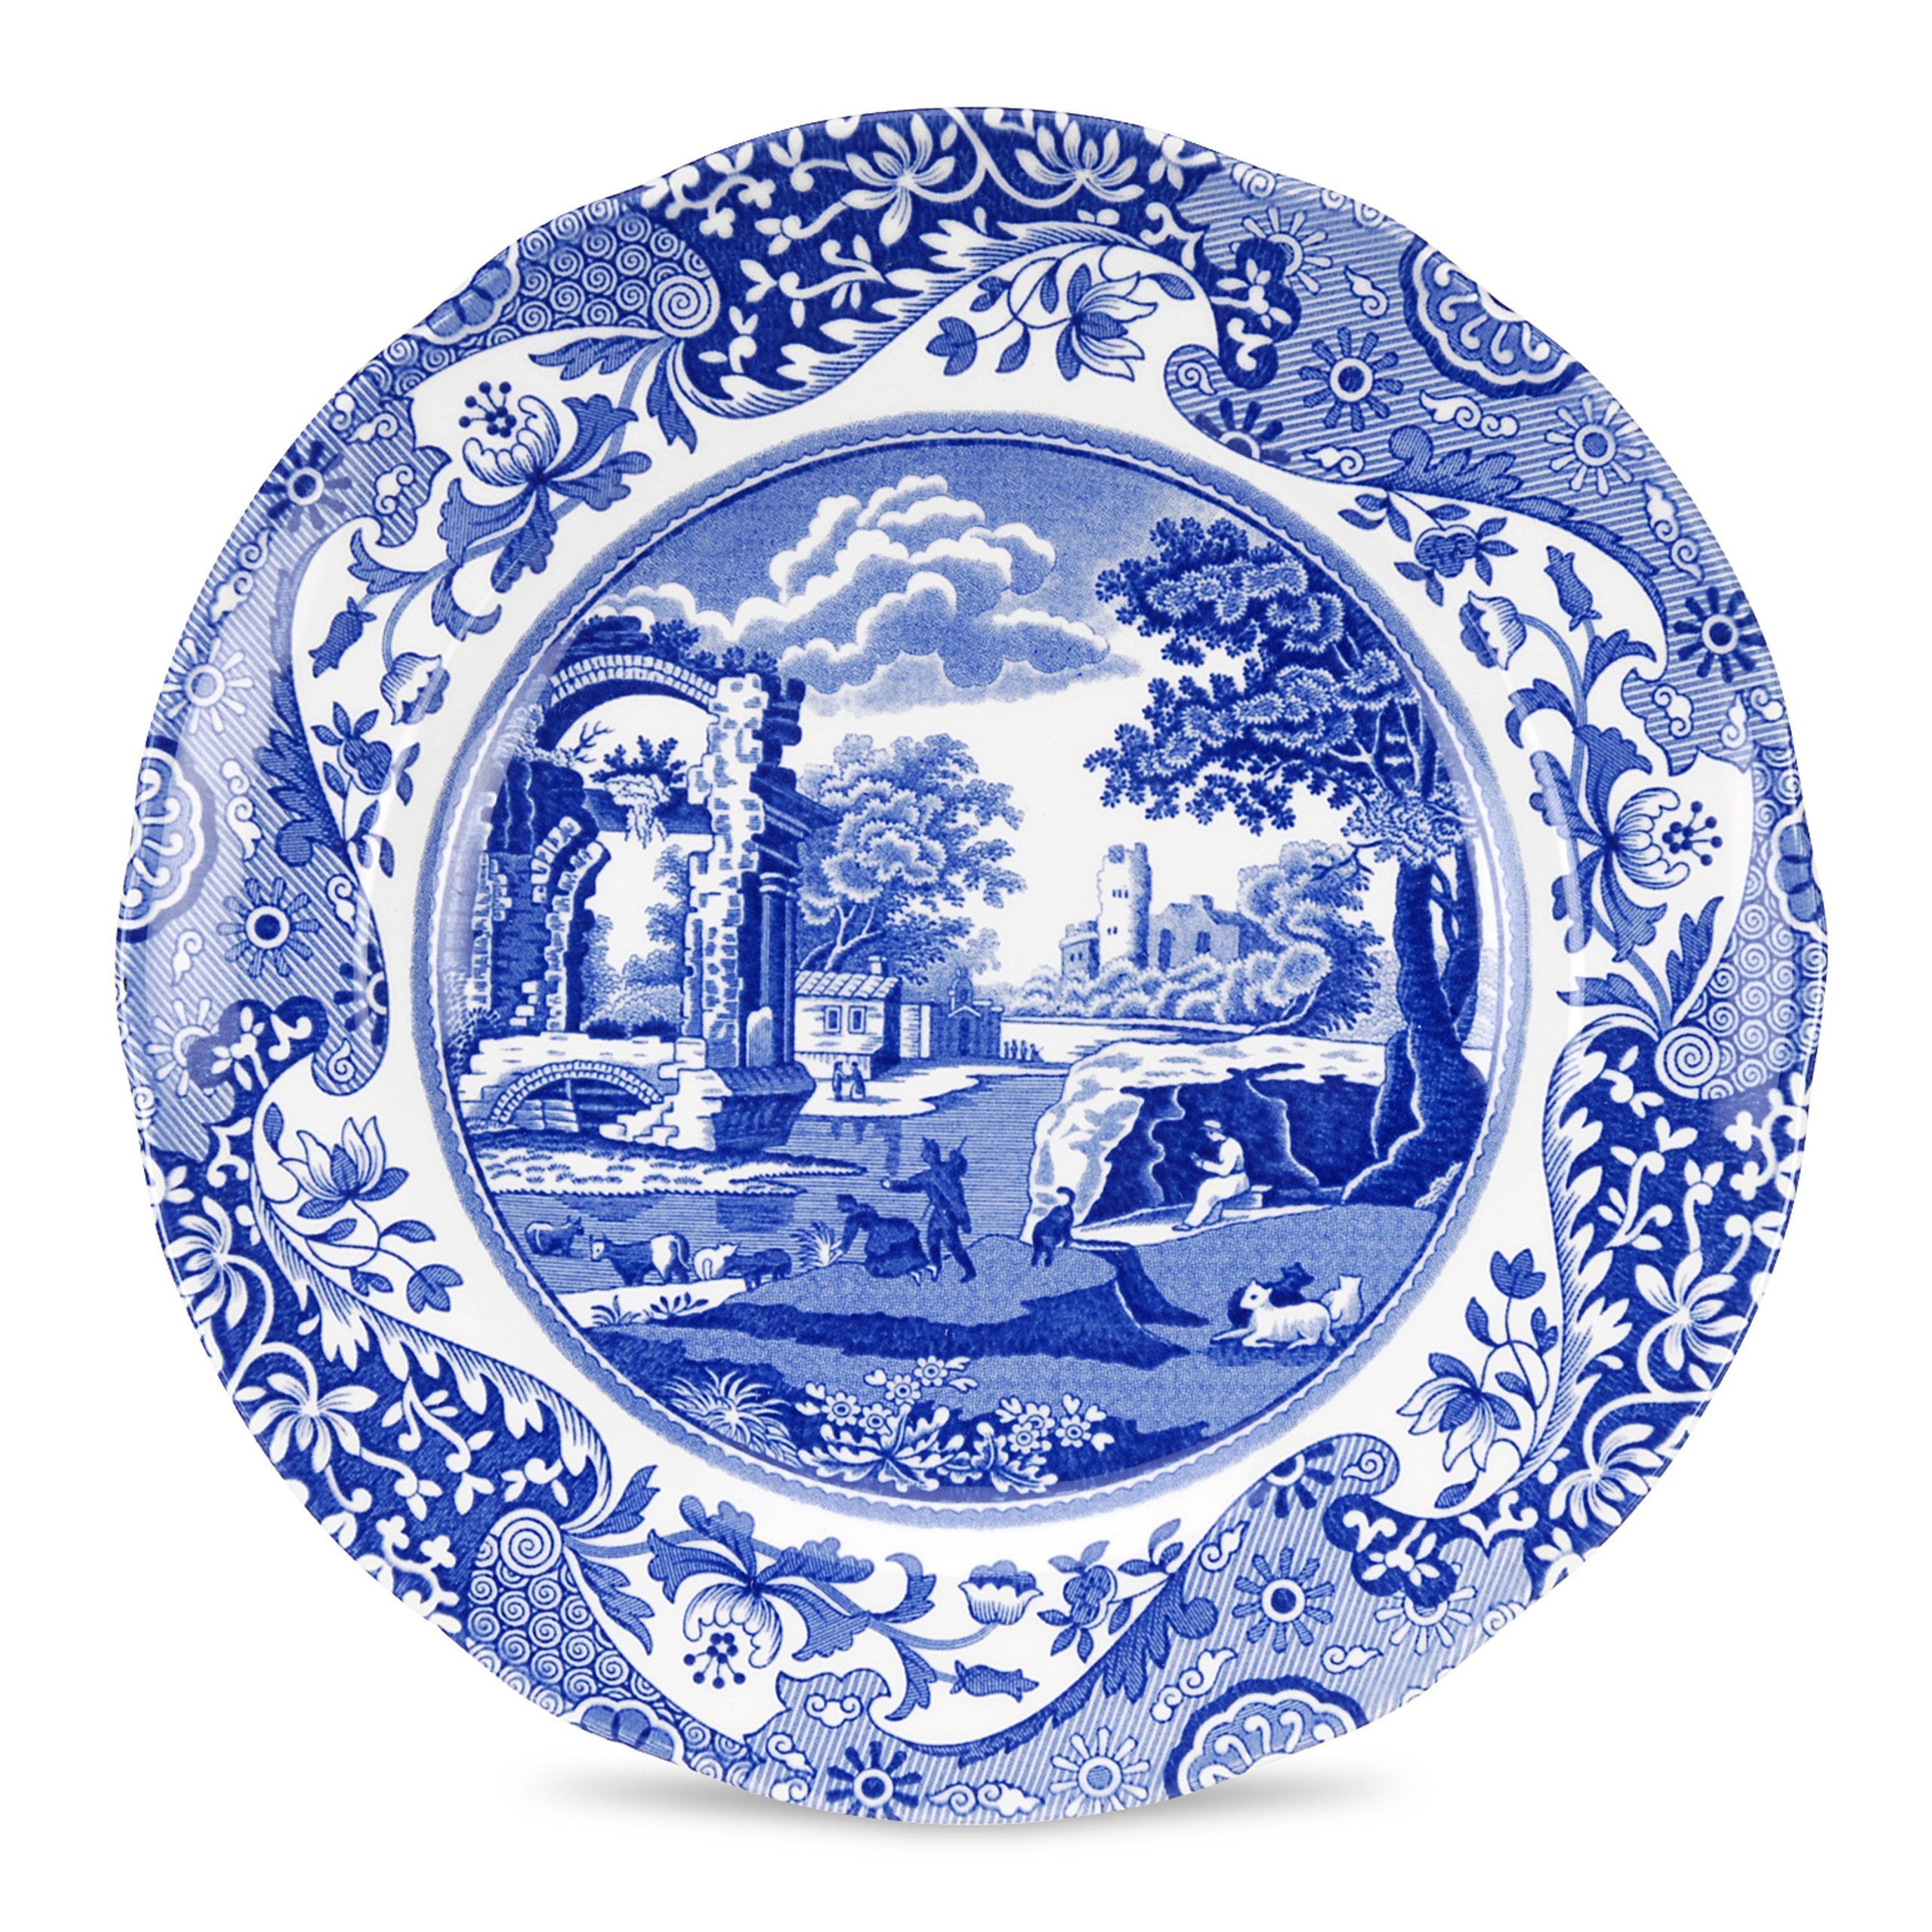 Blue Italian Porcelain Salad Plate  sc 1 st  Pinterest & Blue Italian Porcelain Salad Plate | Salad plates and Products